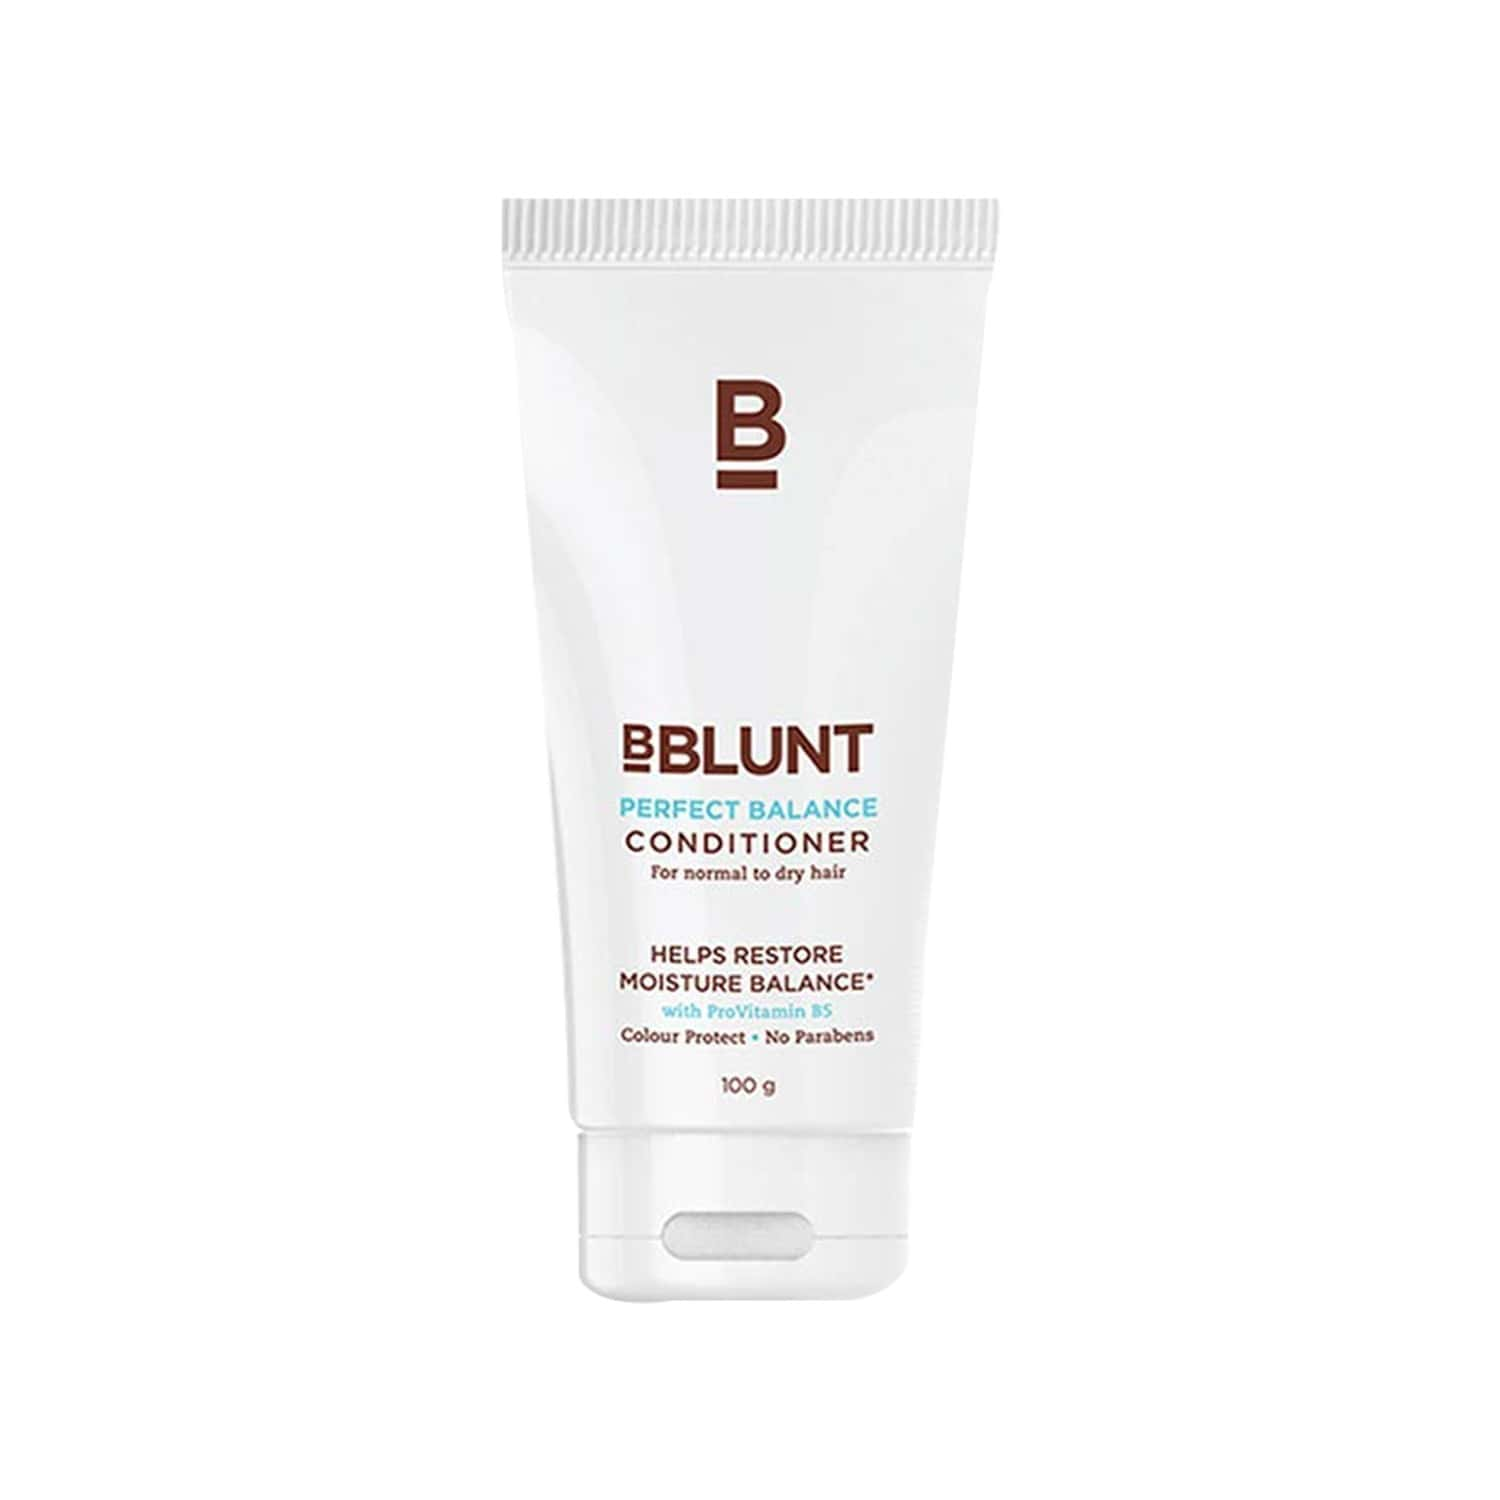 Bblunt Perfect Balance Conditioner For Normal To Dry Hair - 100 Gm